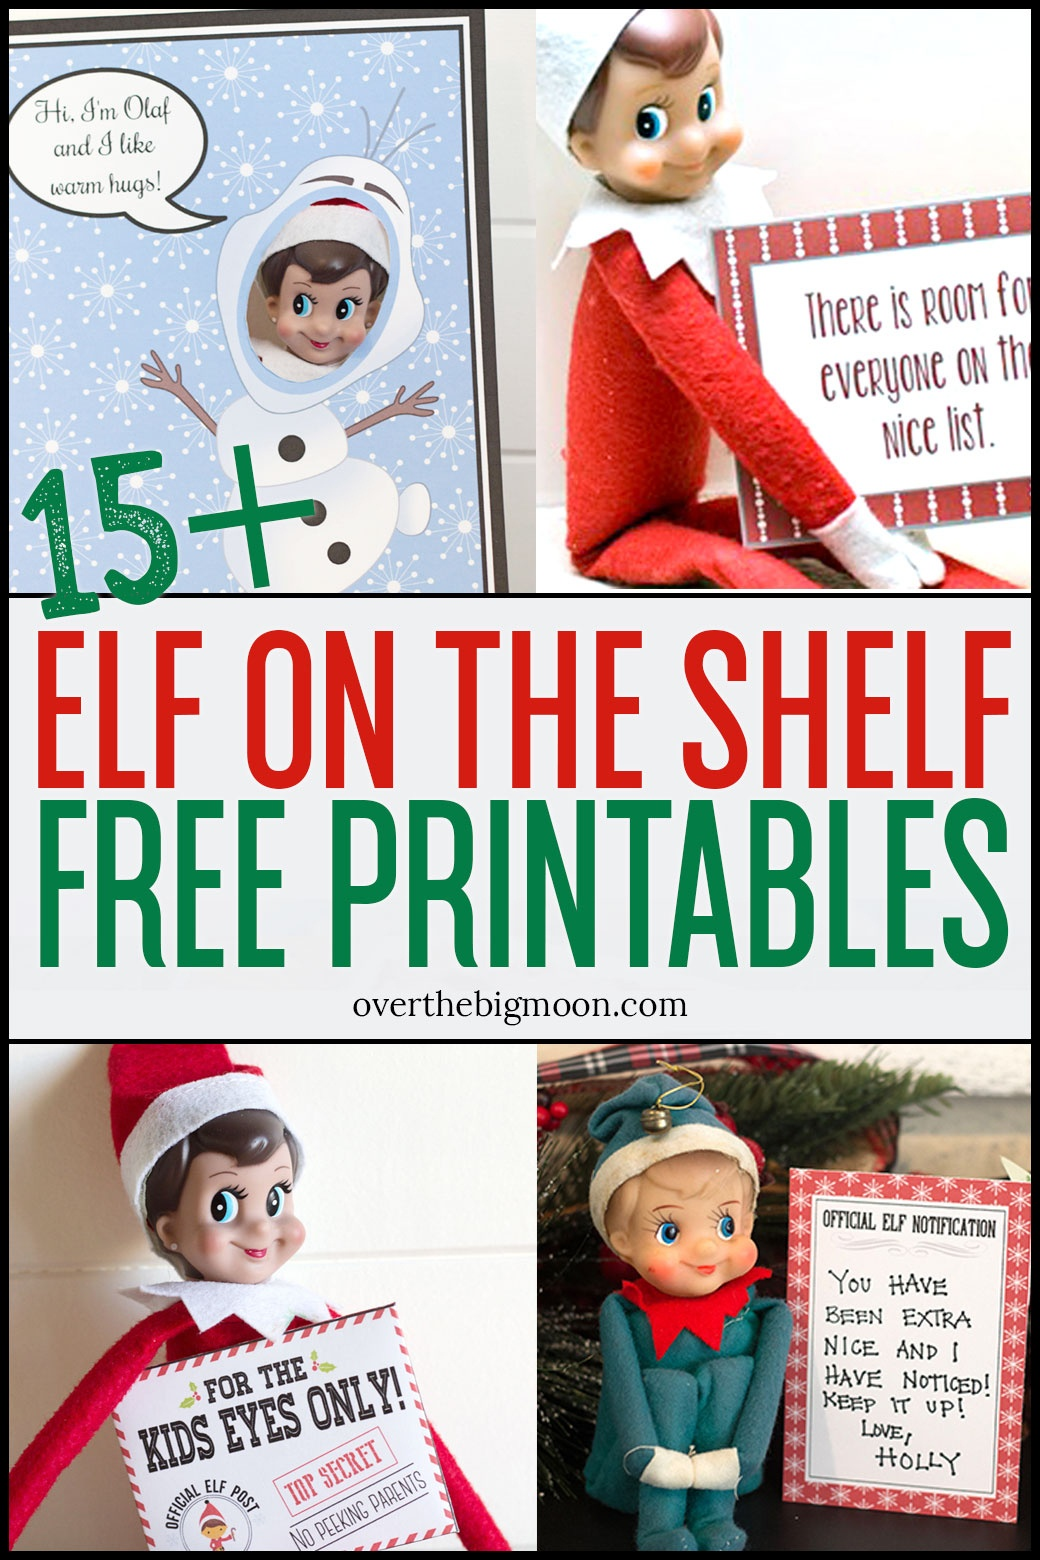 Elf On The Shelf Printables & Ideas | Over The Big Moon - Elf On The Shelf Free Printable Ideas